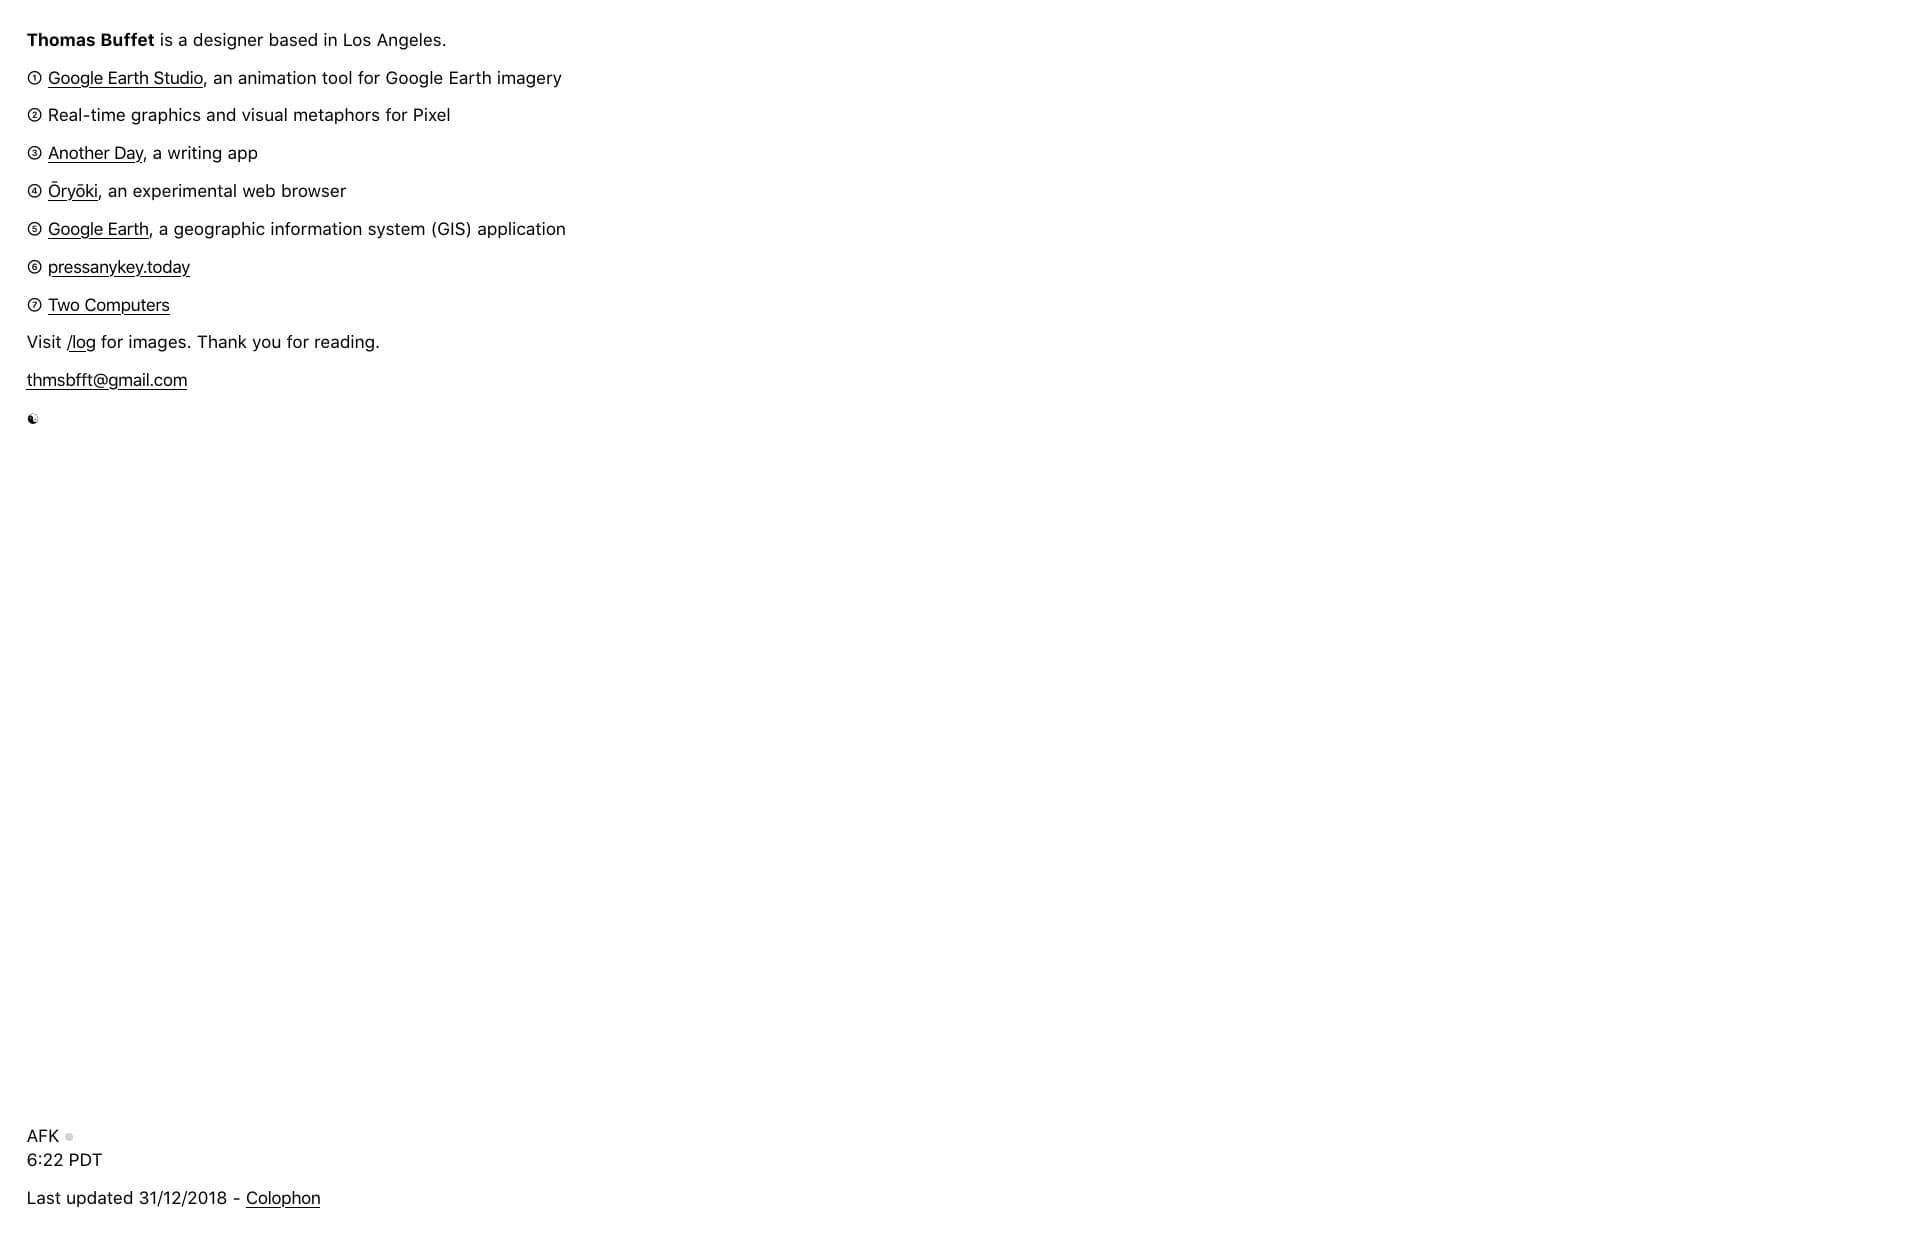 Screenshot of the website Thomas Buffet, featured on The Gallery, a curated collection of minimal websites